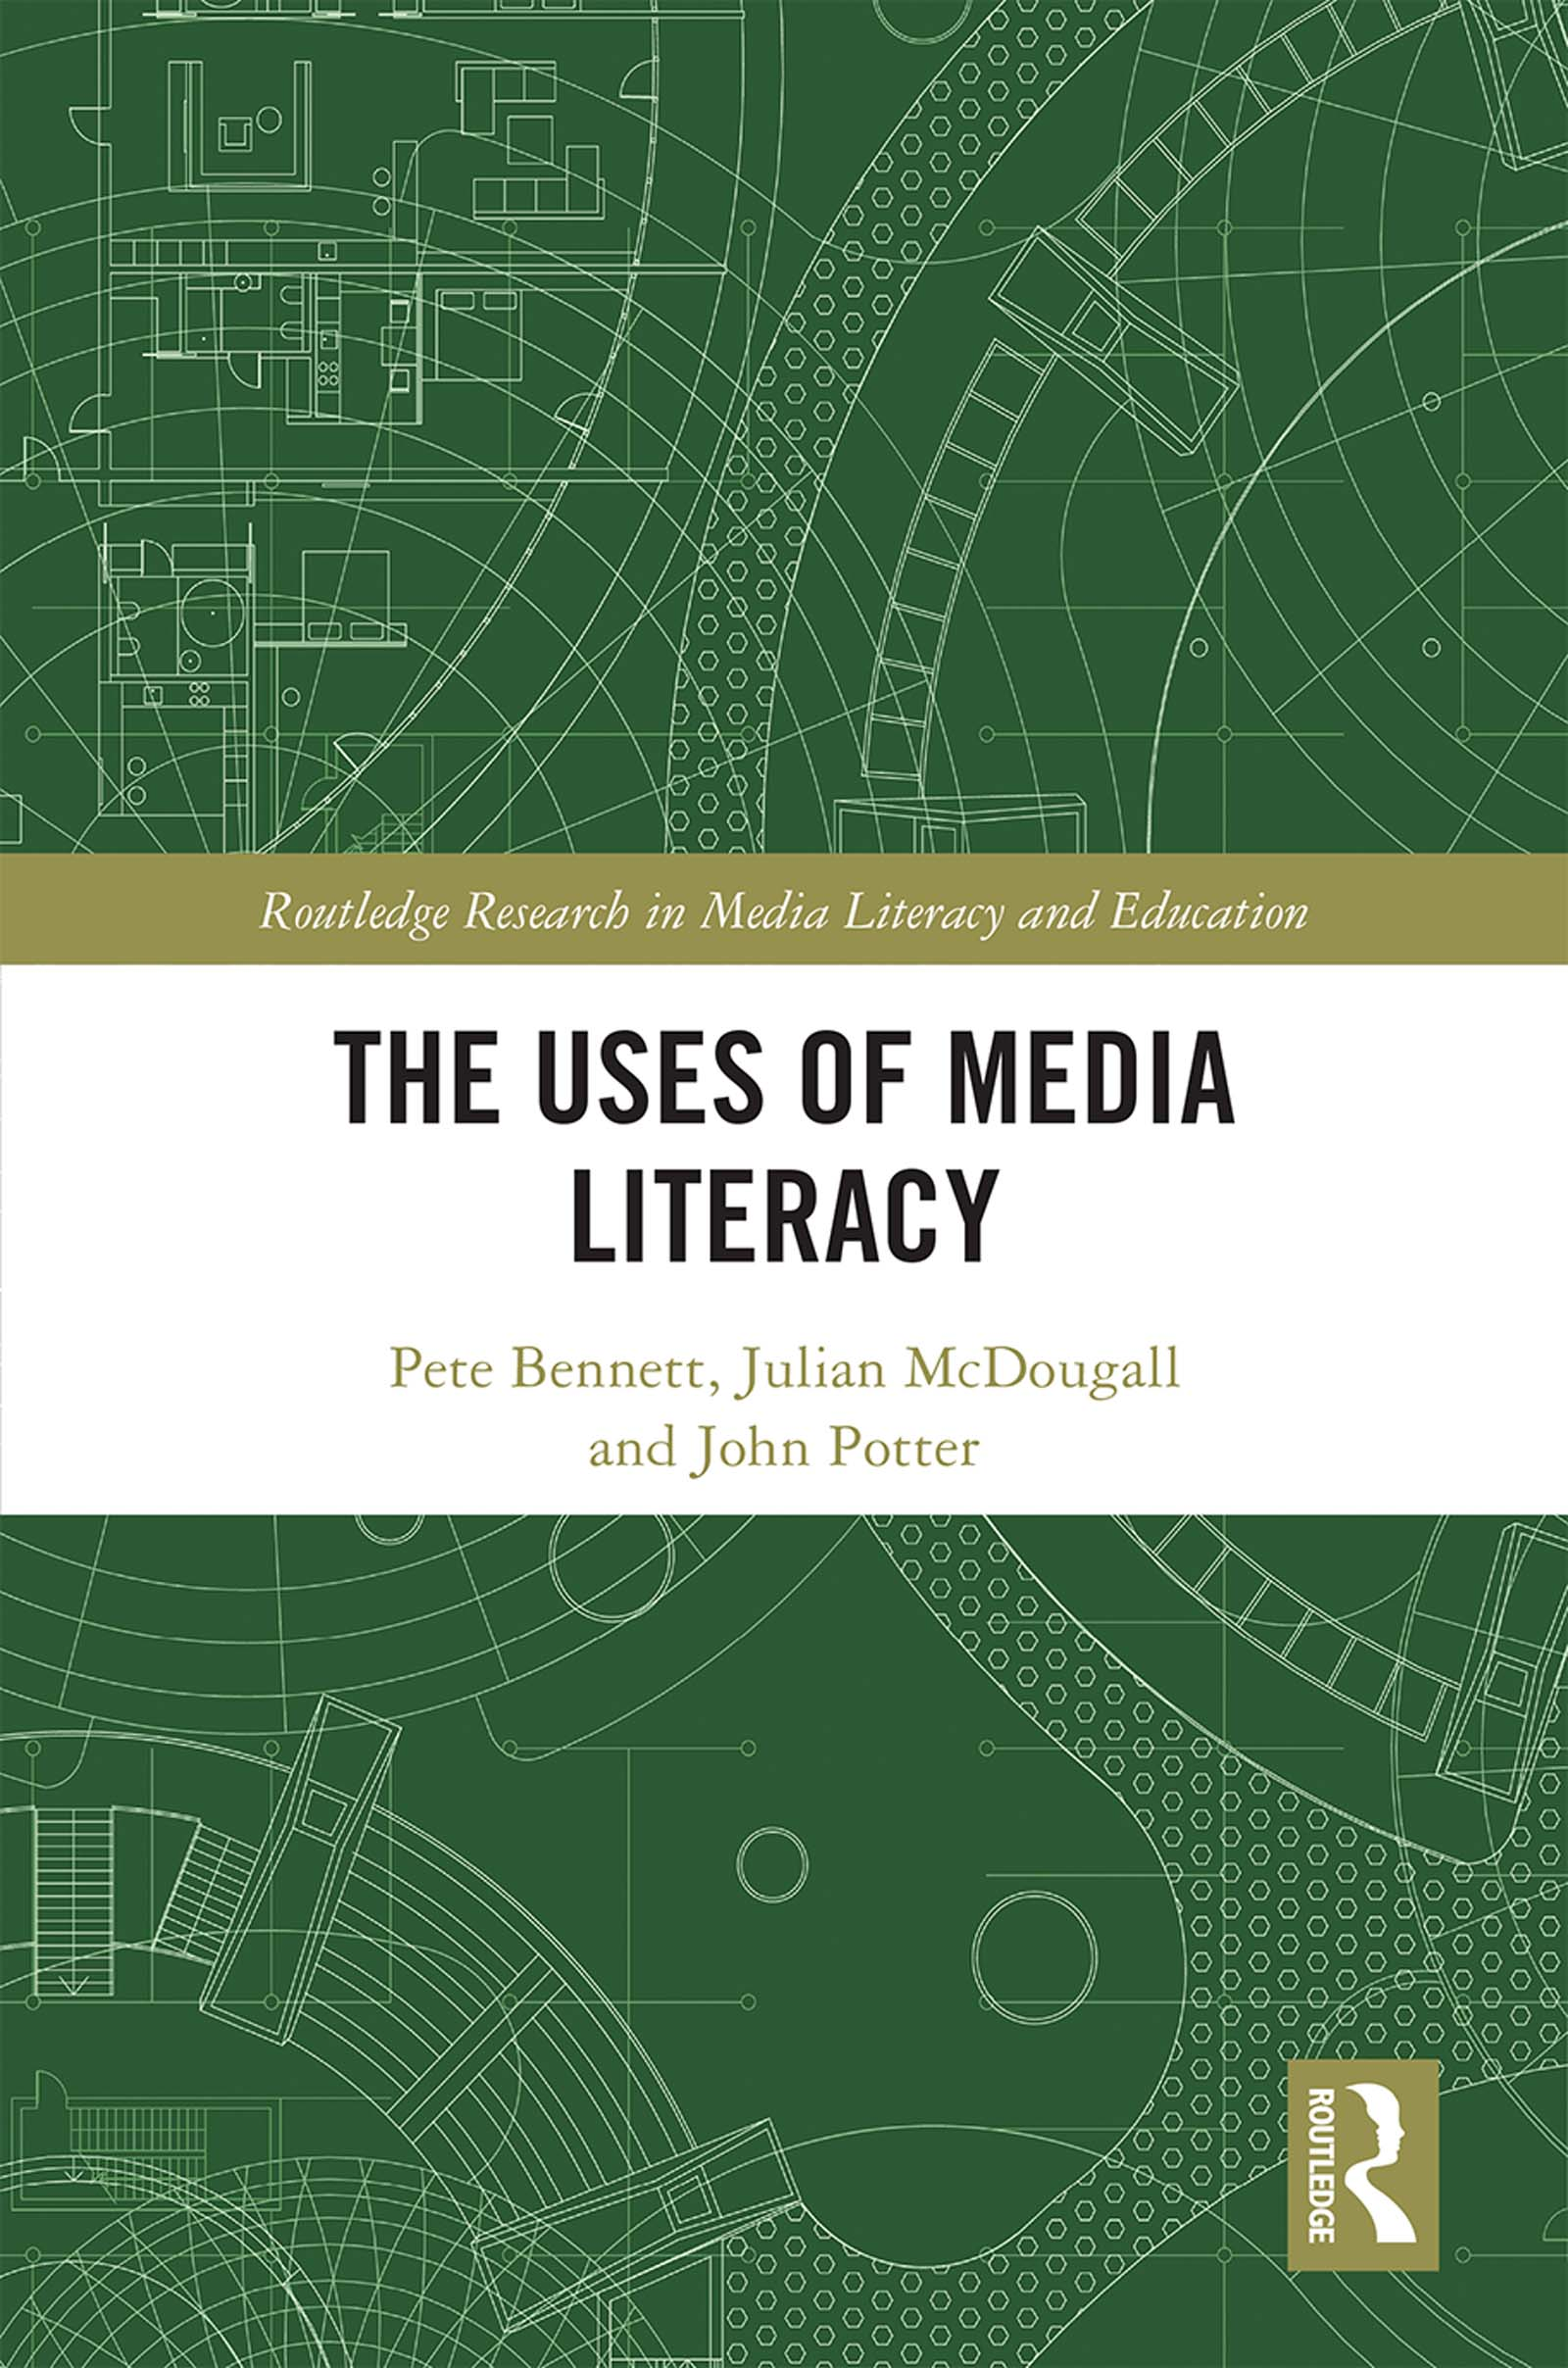 The Uses of Media Literacy book cover